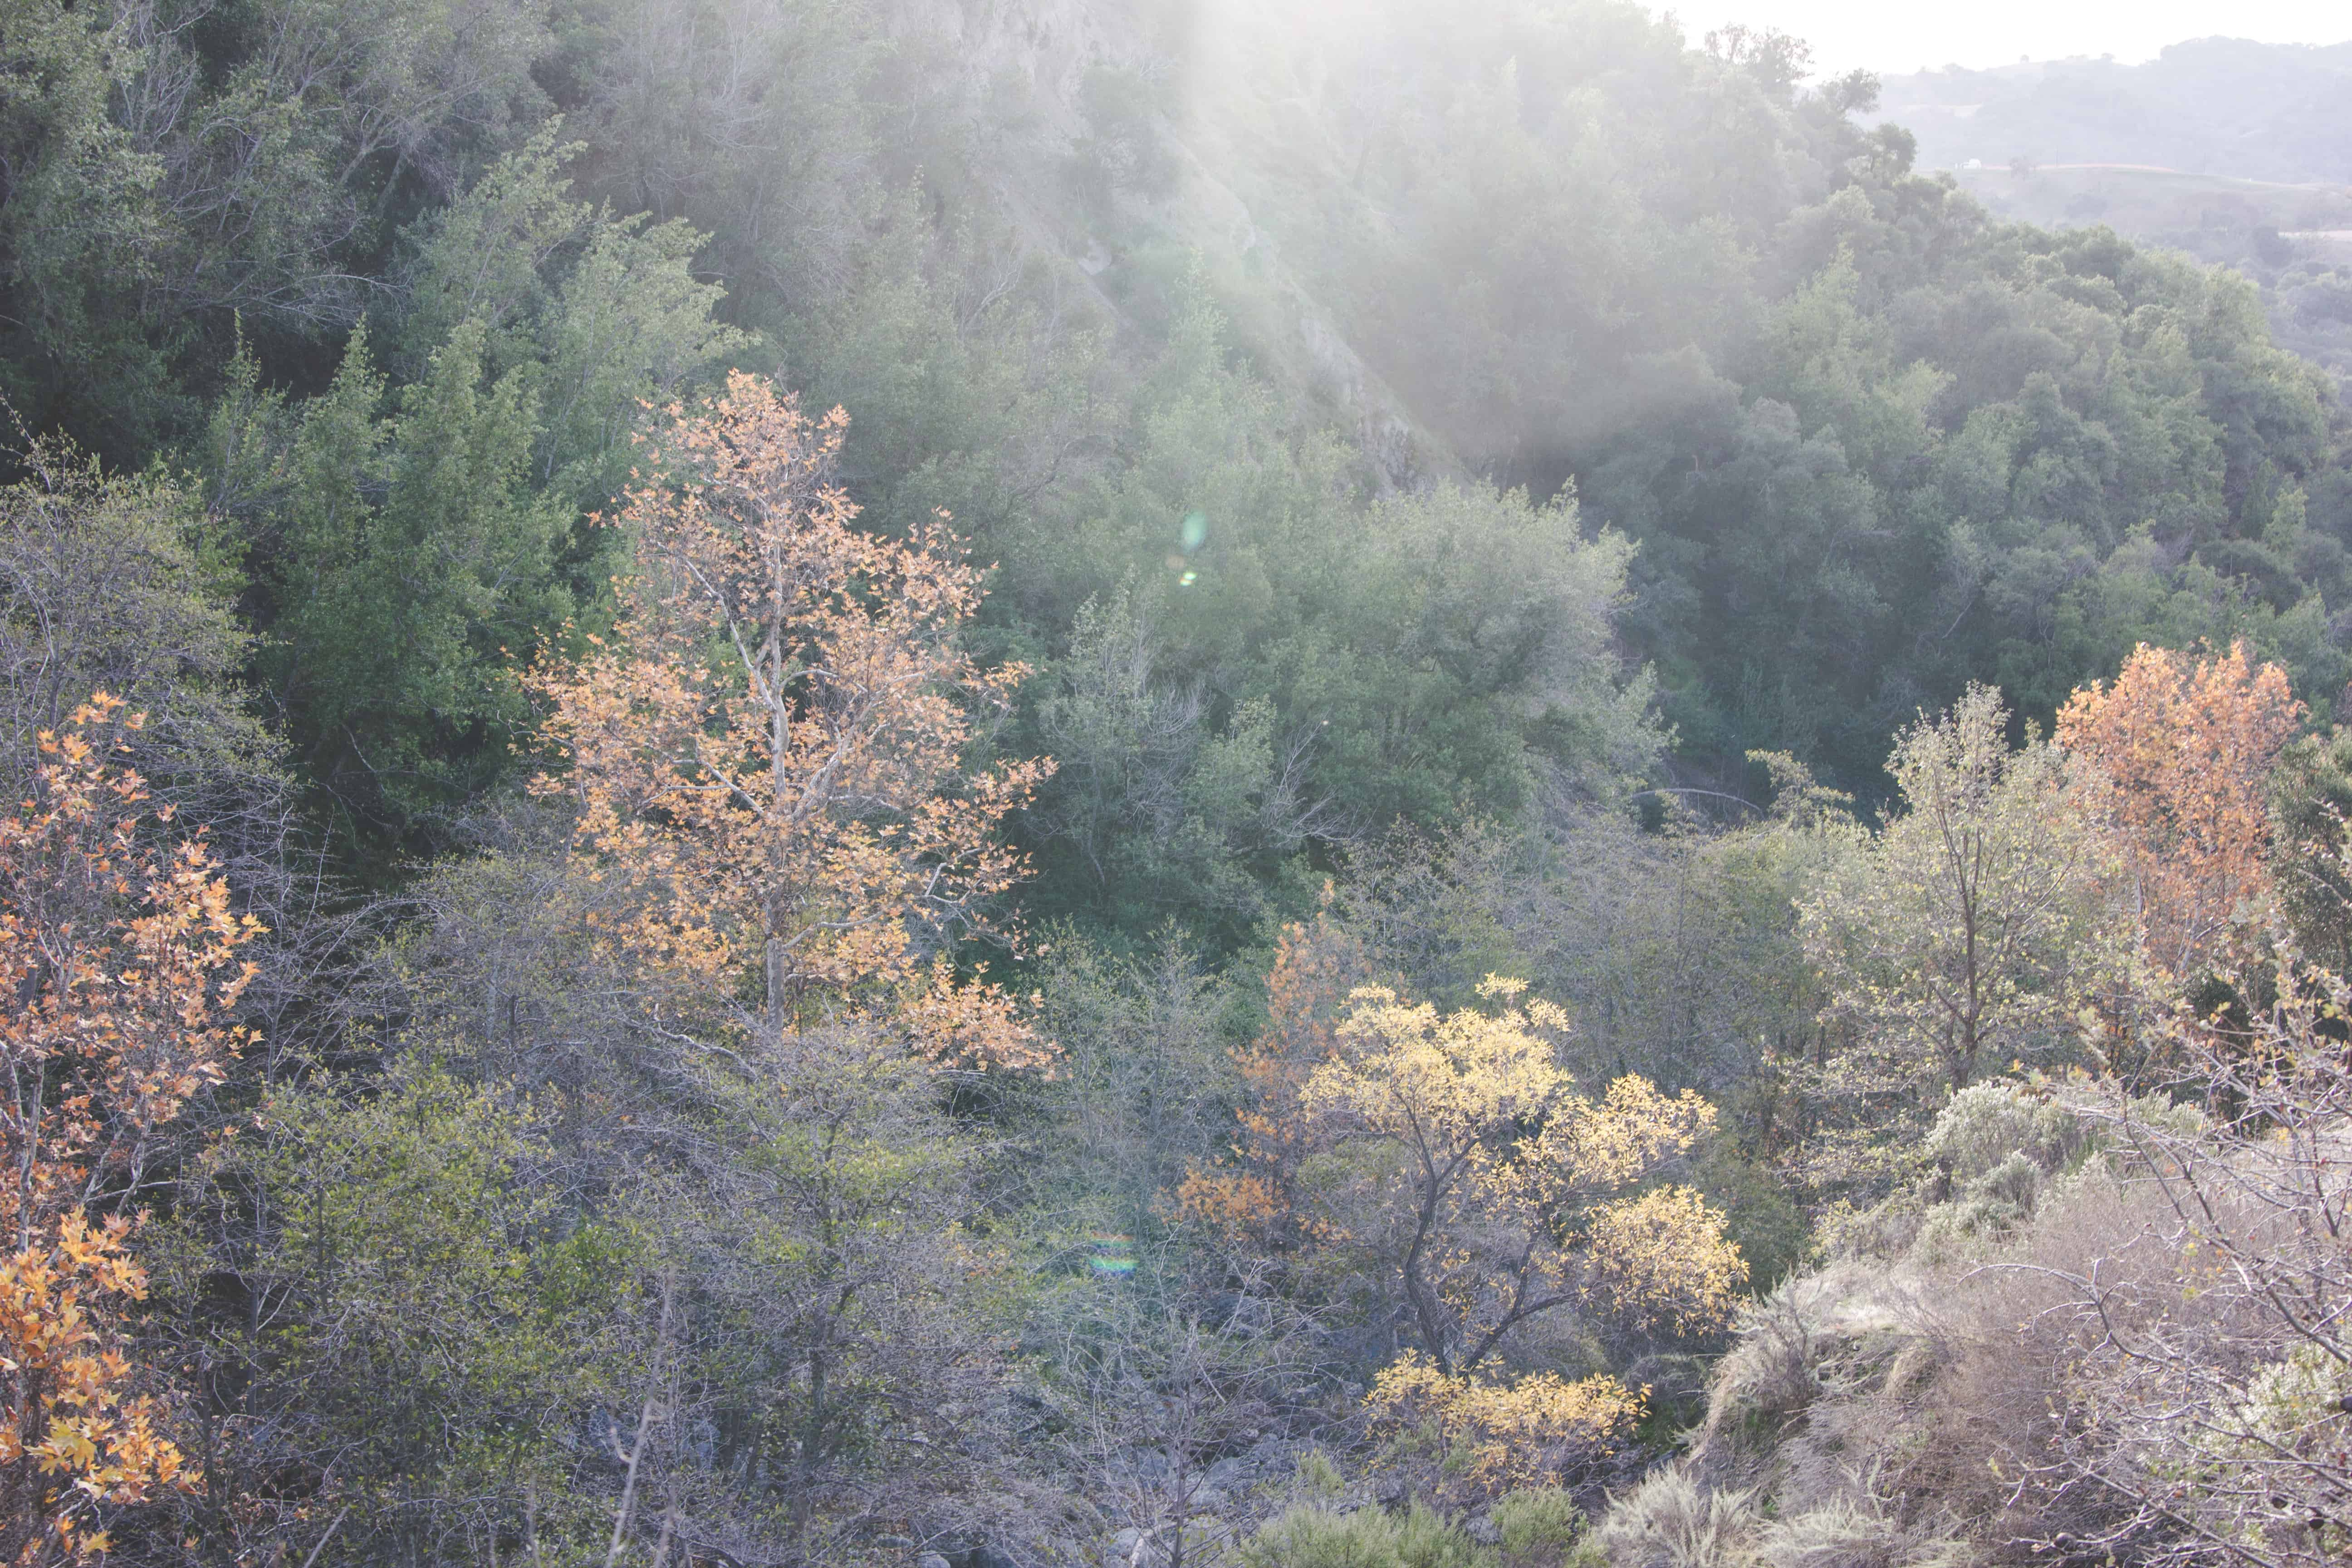 Trees in Sunol Regional Wilderness Area in Cailfornia near the Bay Area